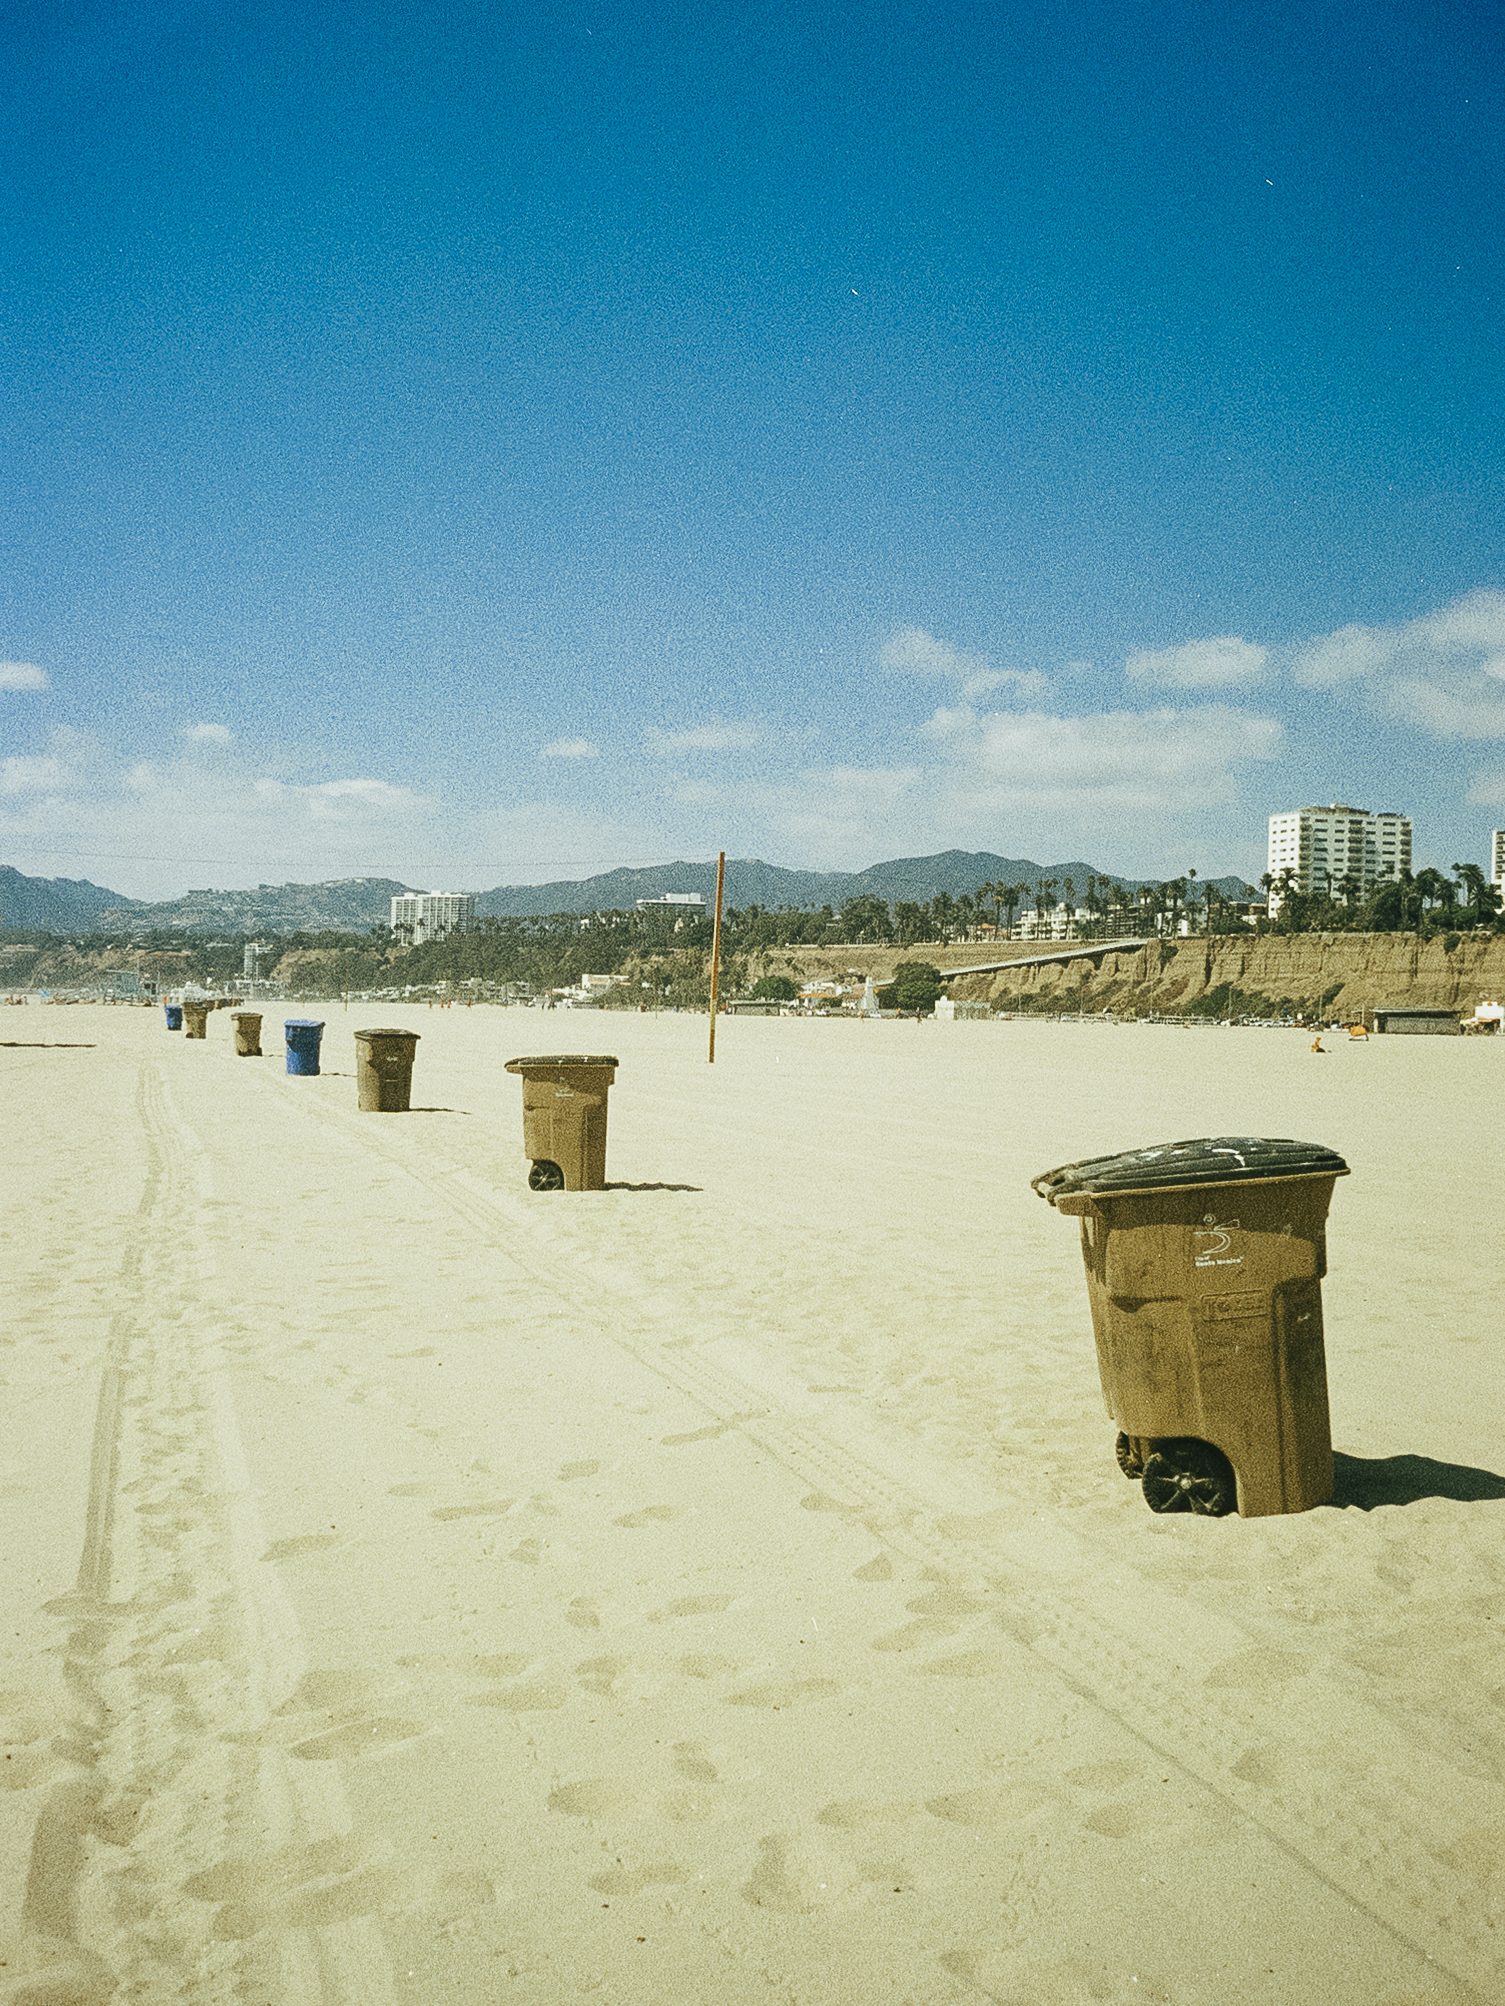 film_california_17_micha45-092.jpg